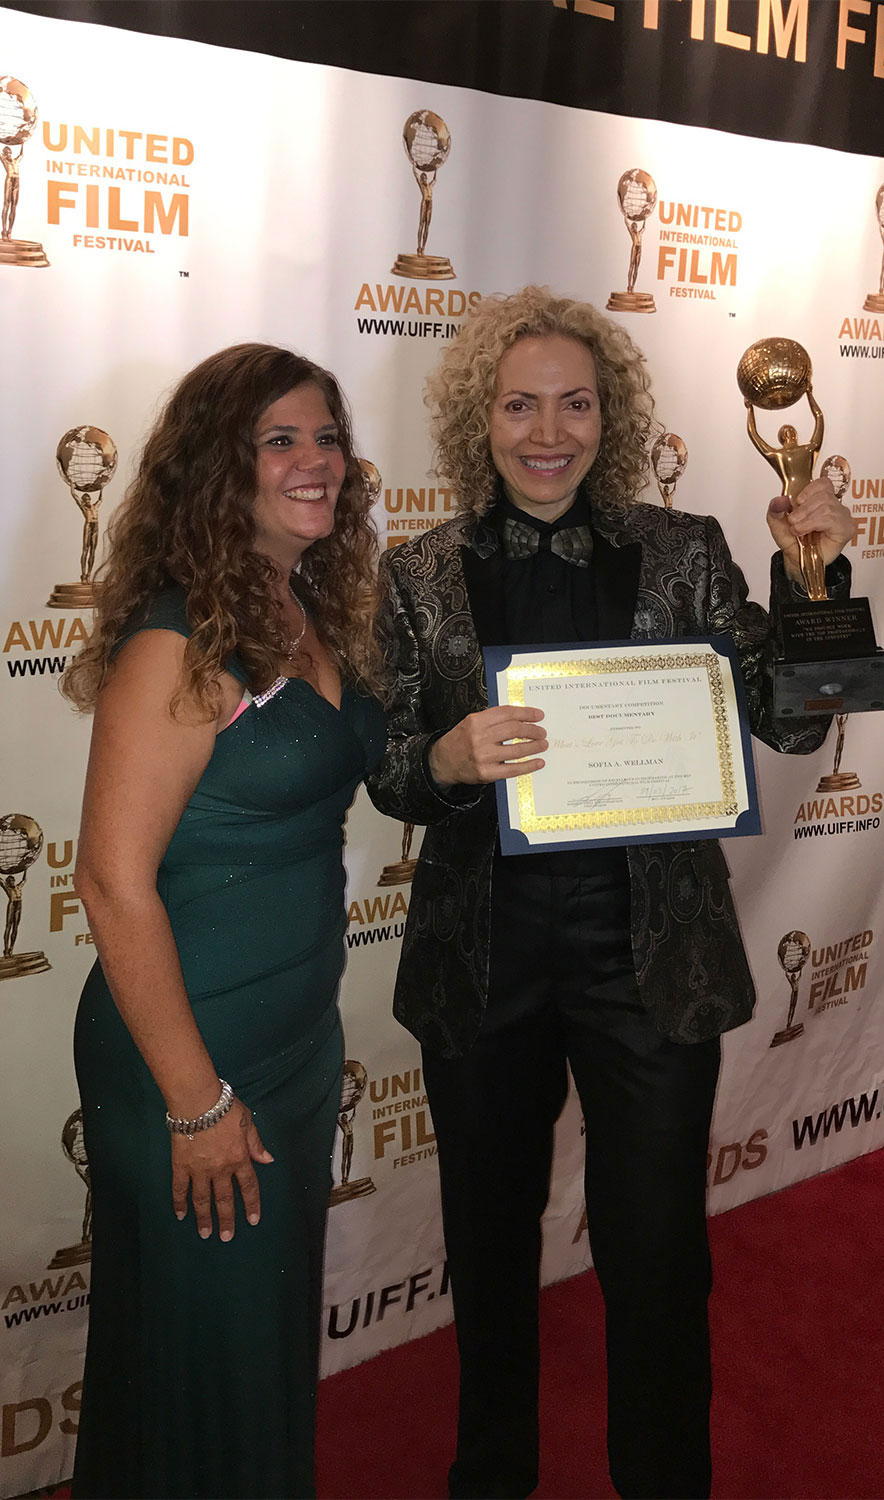 Sofia Wellman - Award For Best Documentary Film - United International Film Awards - 2017 - Whats Love Got To Do With It - Film by Sofia Wellman